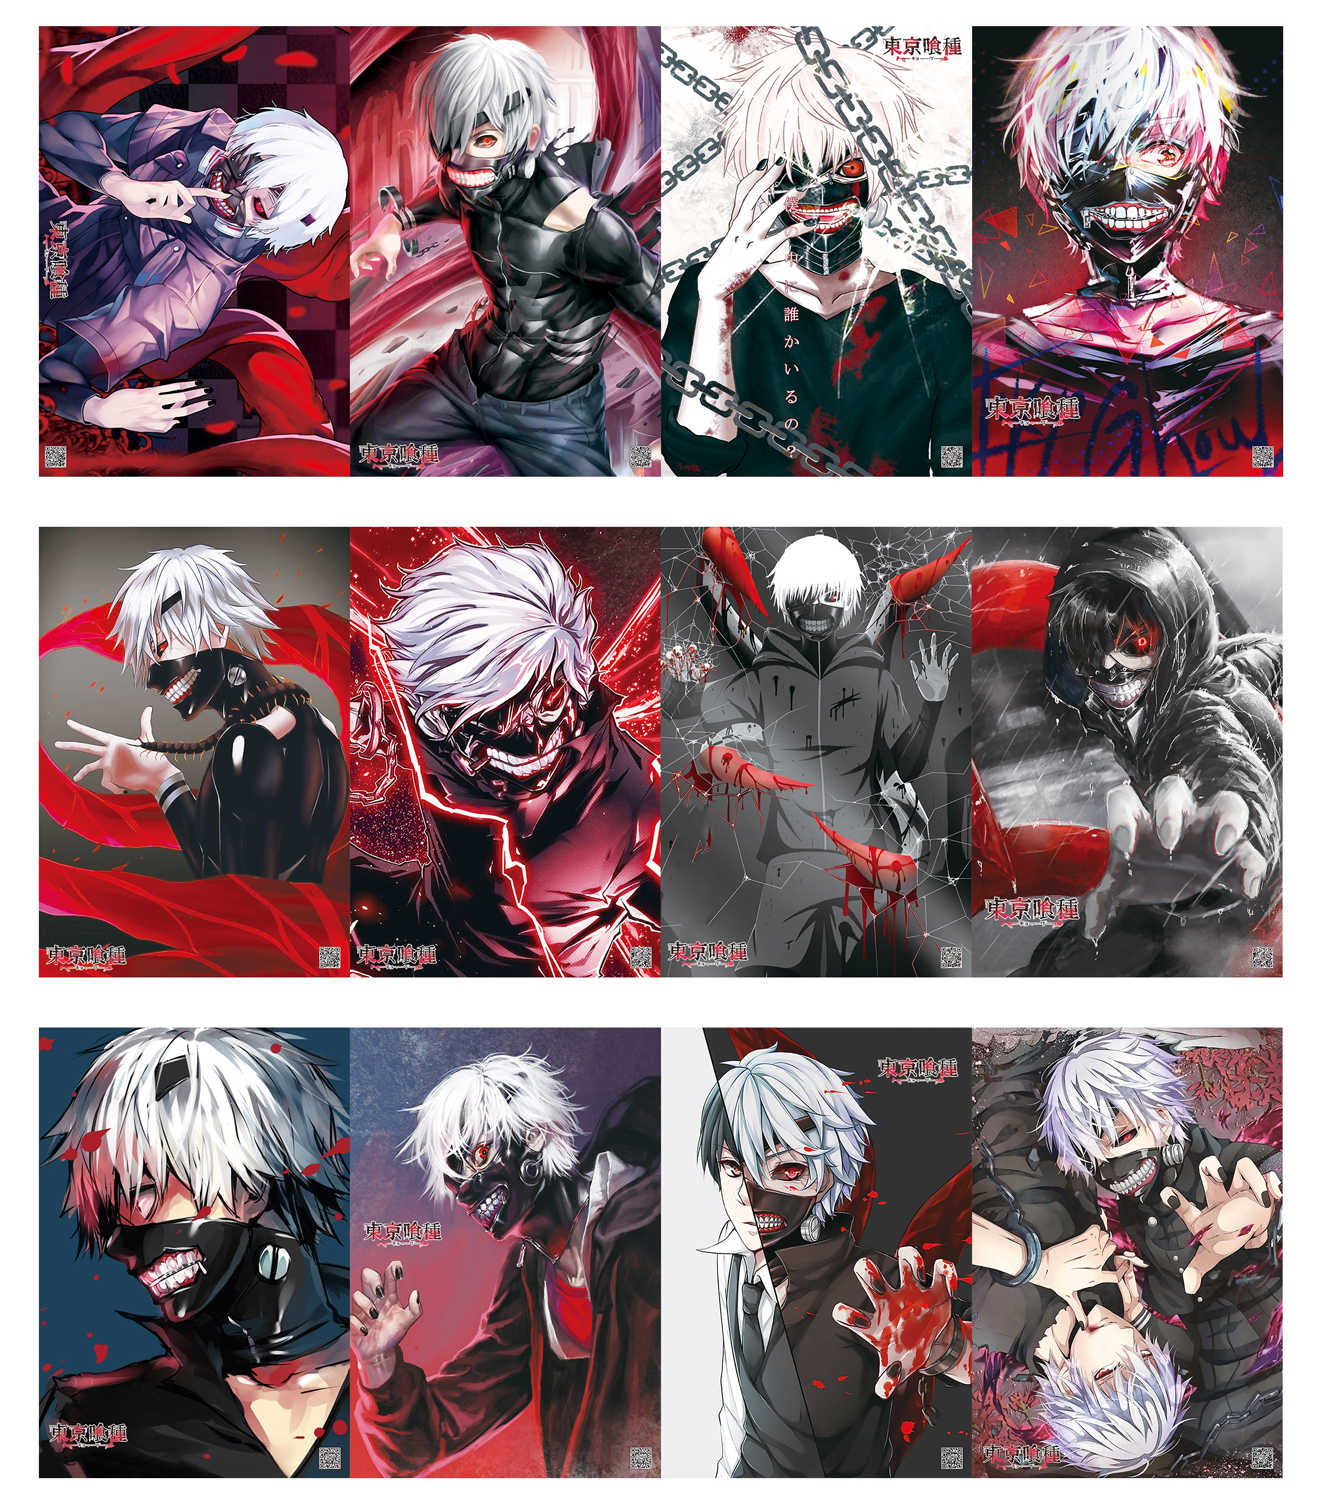 12 Pc Anime My Hero Academia Fairy Tail Tokyo Ghoul Attack On Titan Cells At Work Hd Waterproof Poster Wallpaper Set 42x29cm Action Toy Figures Aliexpress